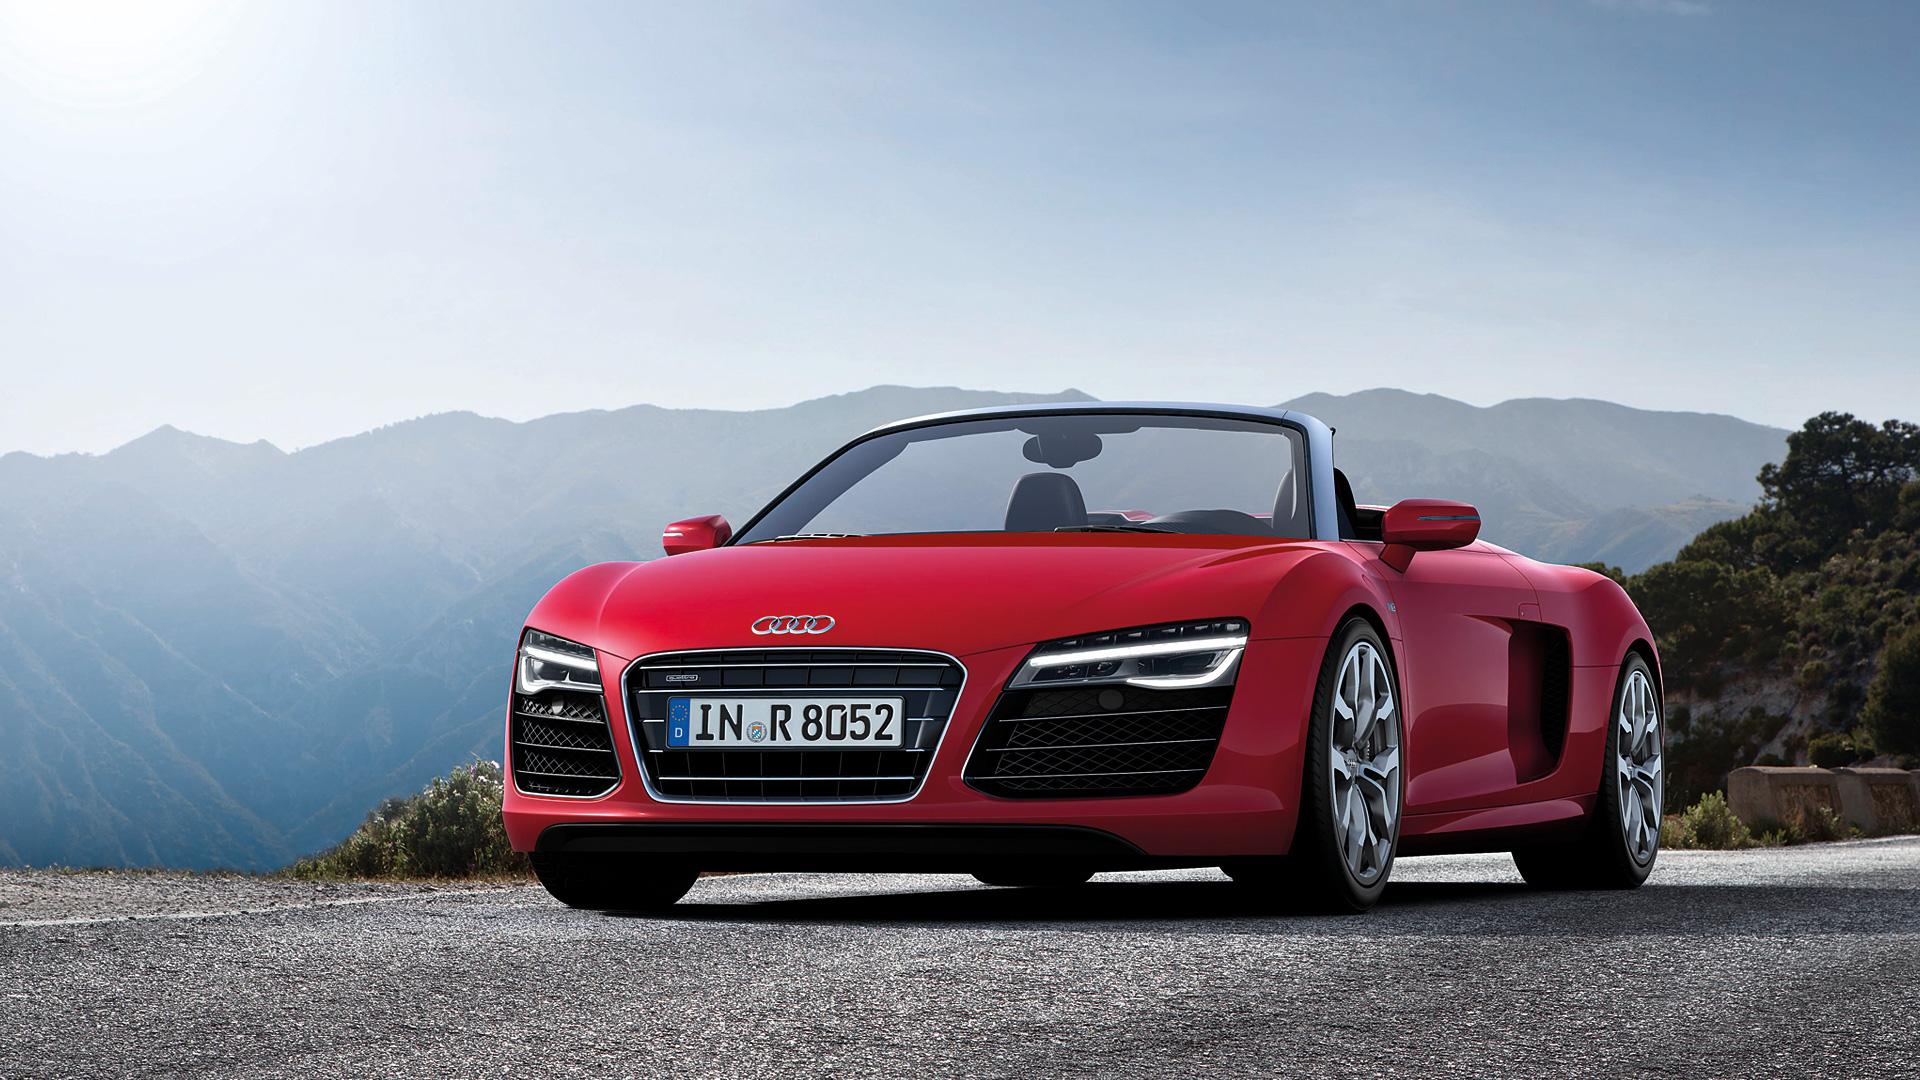 2013 Audi R8 V10 Spyder Wallpapers amp HD Images   WSupercars 1920x1080